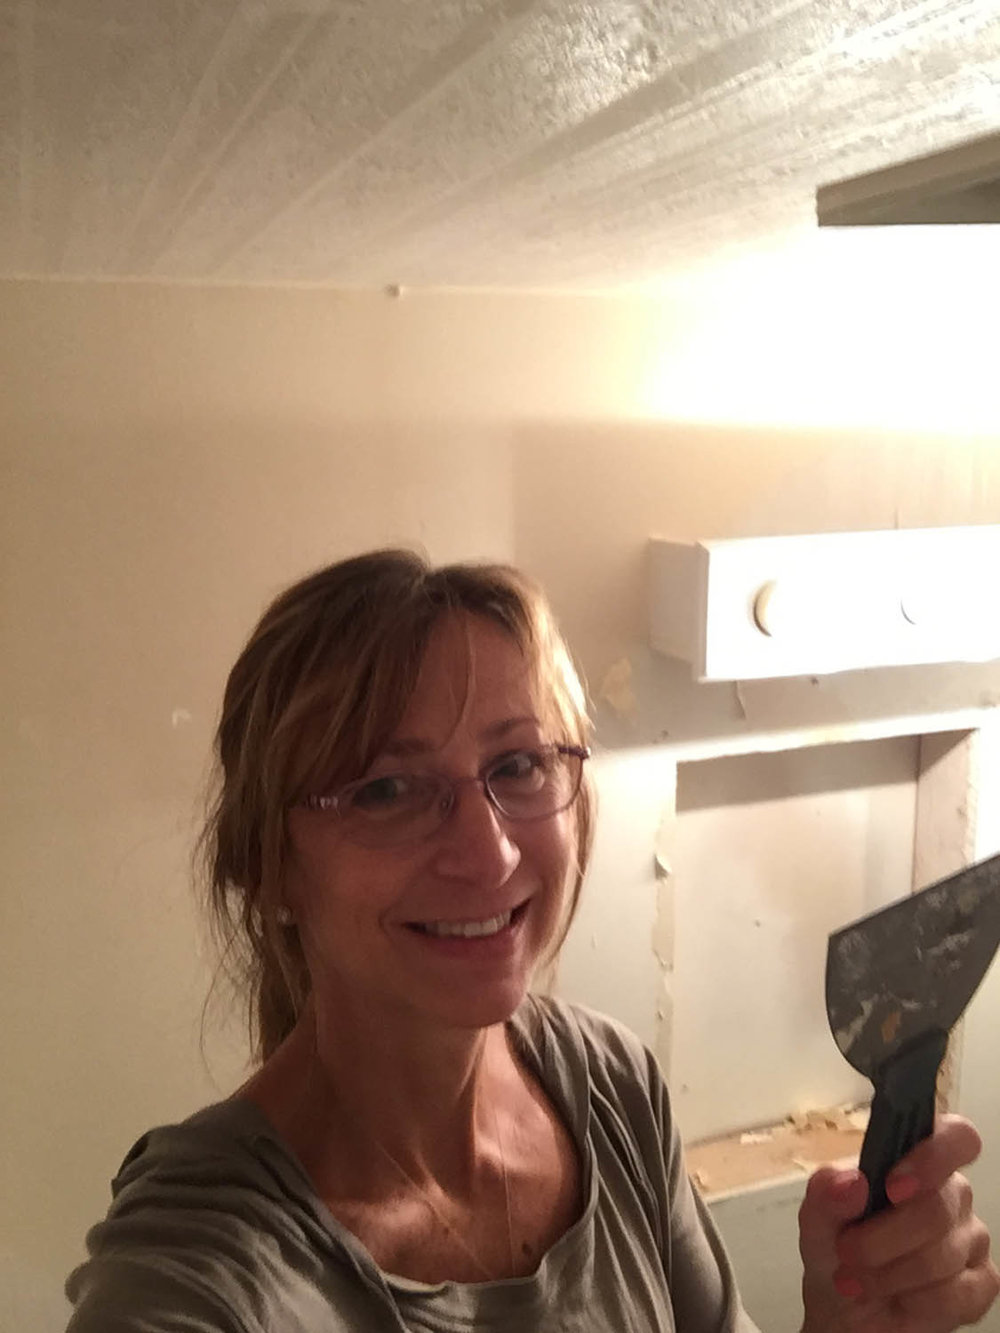 Ashley removing wallpaper with a scraper